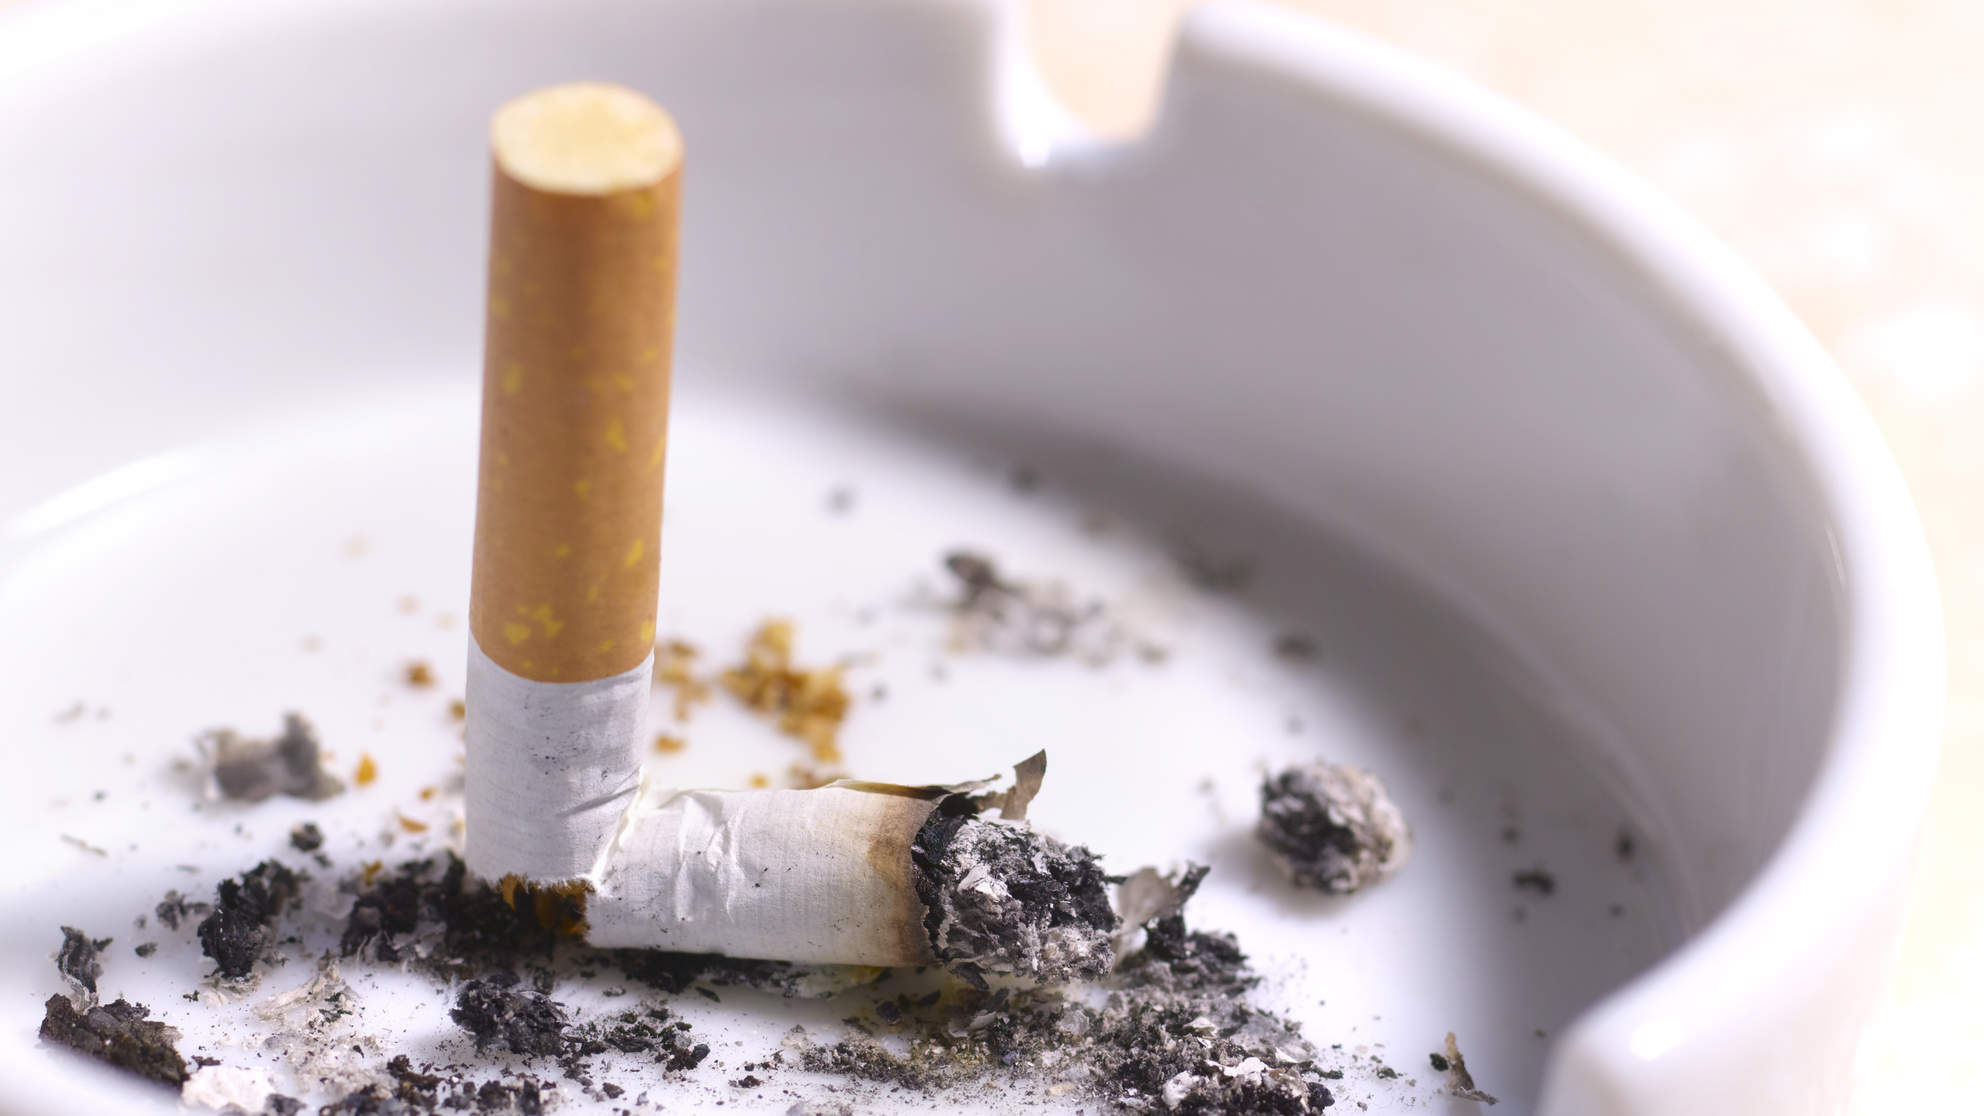 Social Smokers Face Real Risks, Too